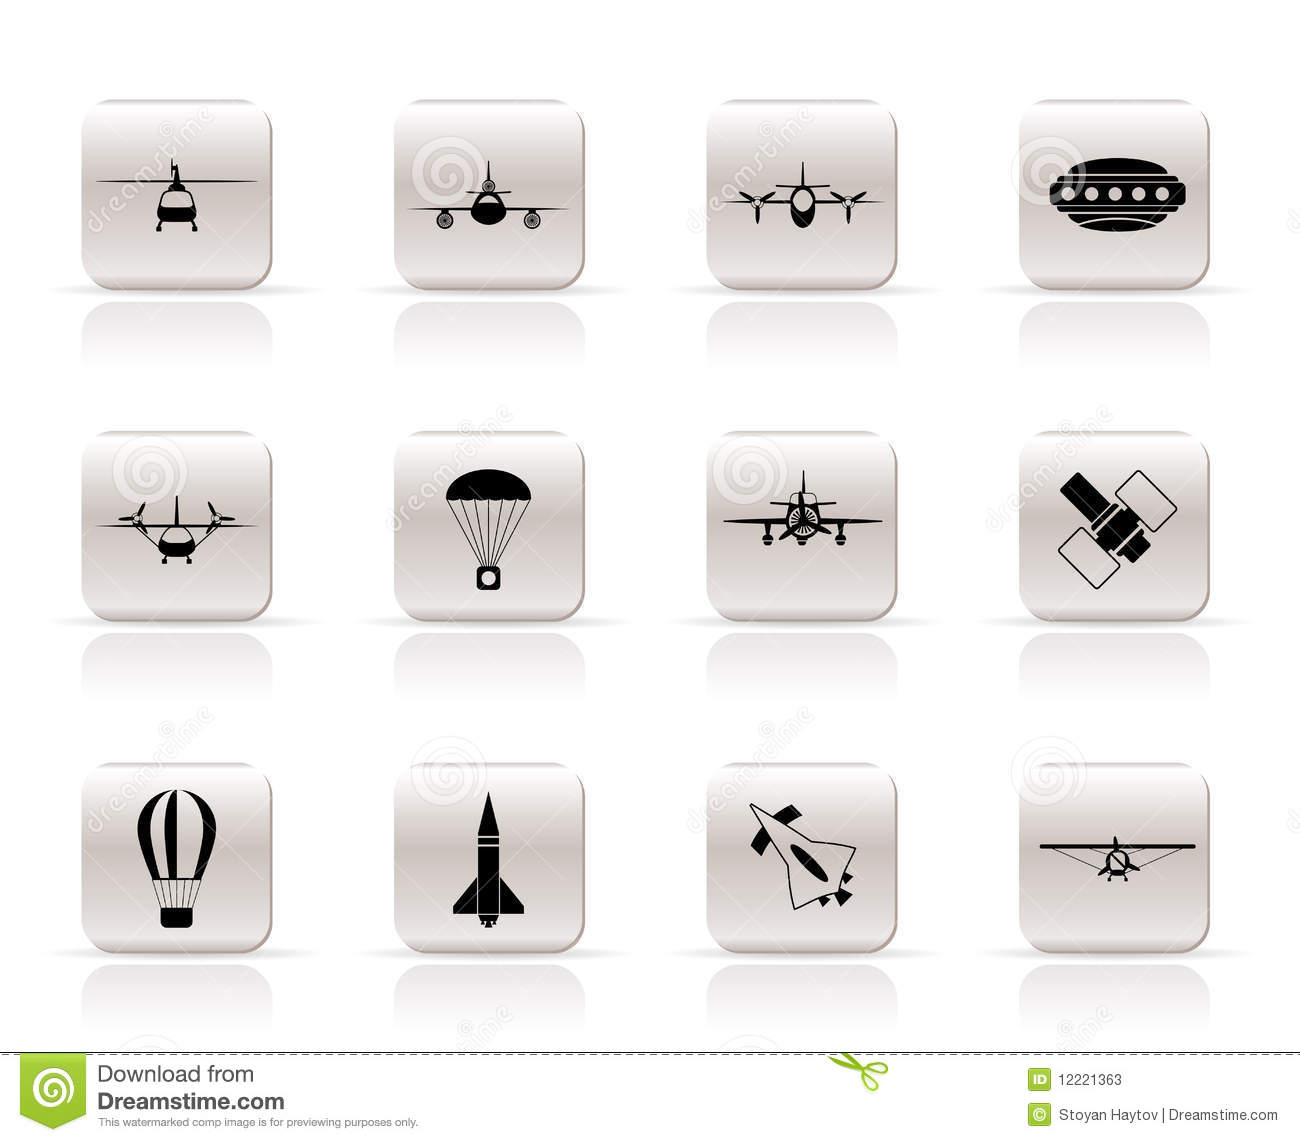 ... types of Aircraft Illustrations and icons - Vector icon set 2: www.dreamstime.com/stock-photos-different-types-aircraft-icons...